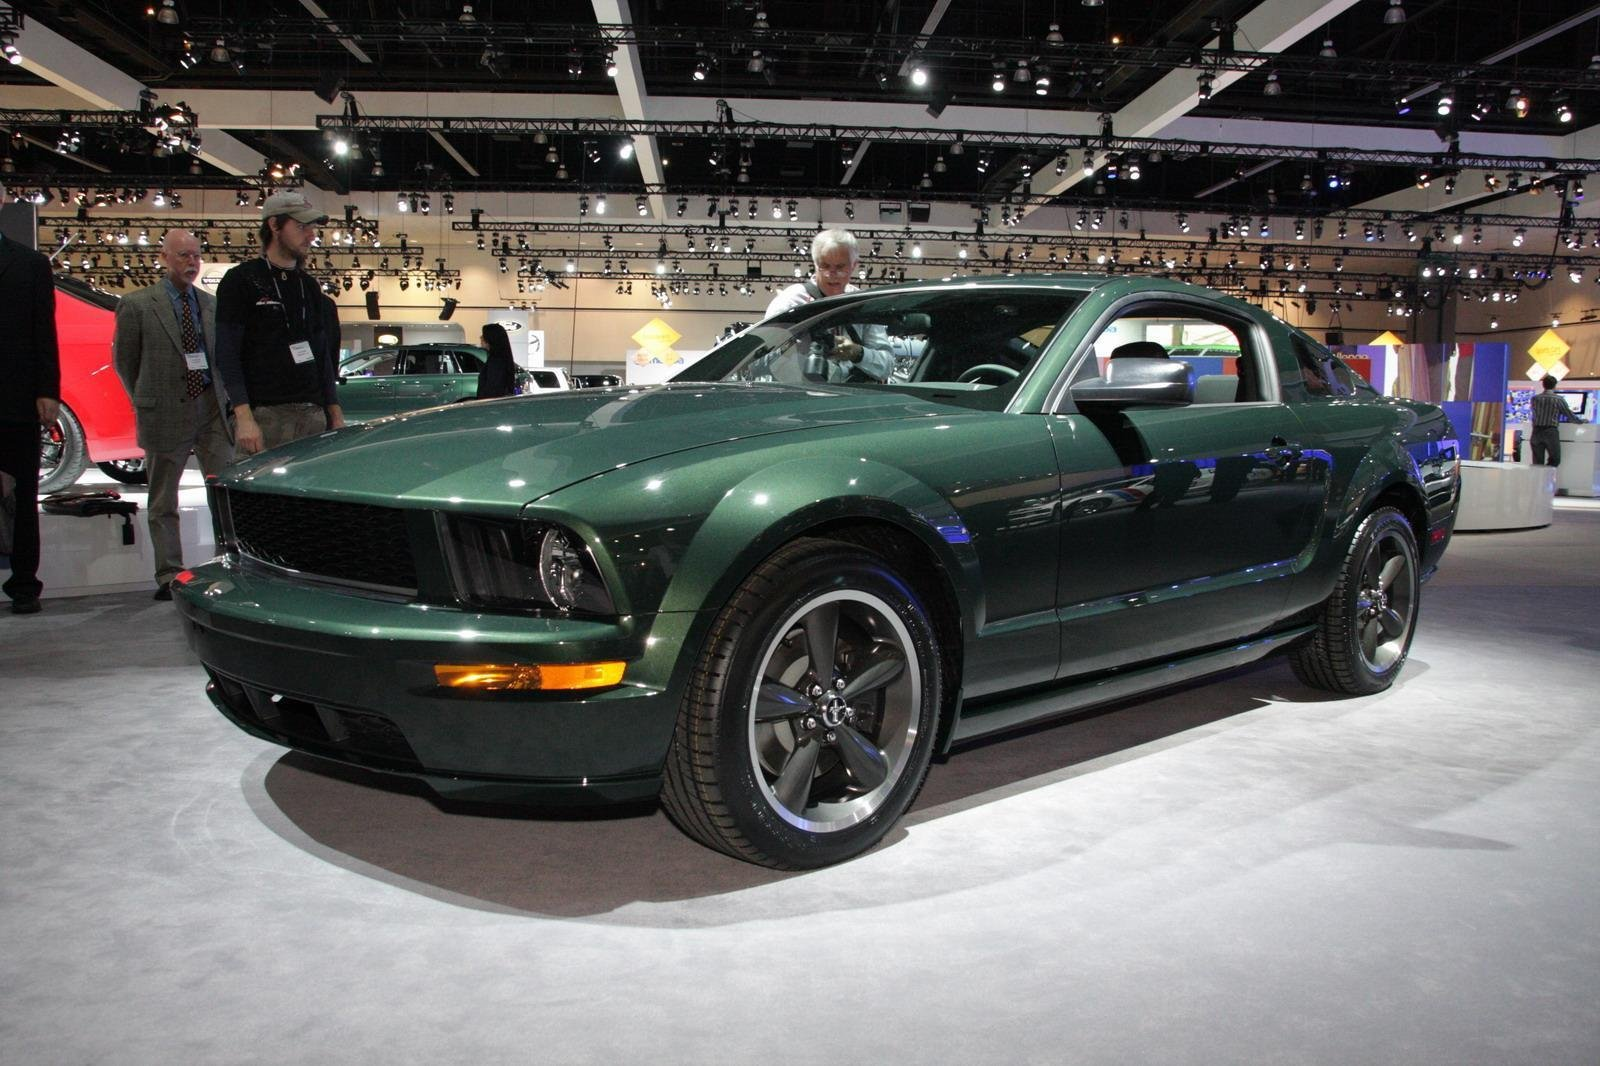 2008 ford mustang bullitt picture 215041 car review. Black Bedroom Furniture Sets. Home Design Ideas